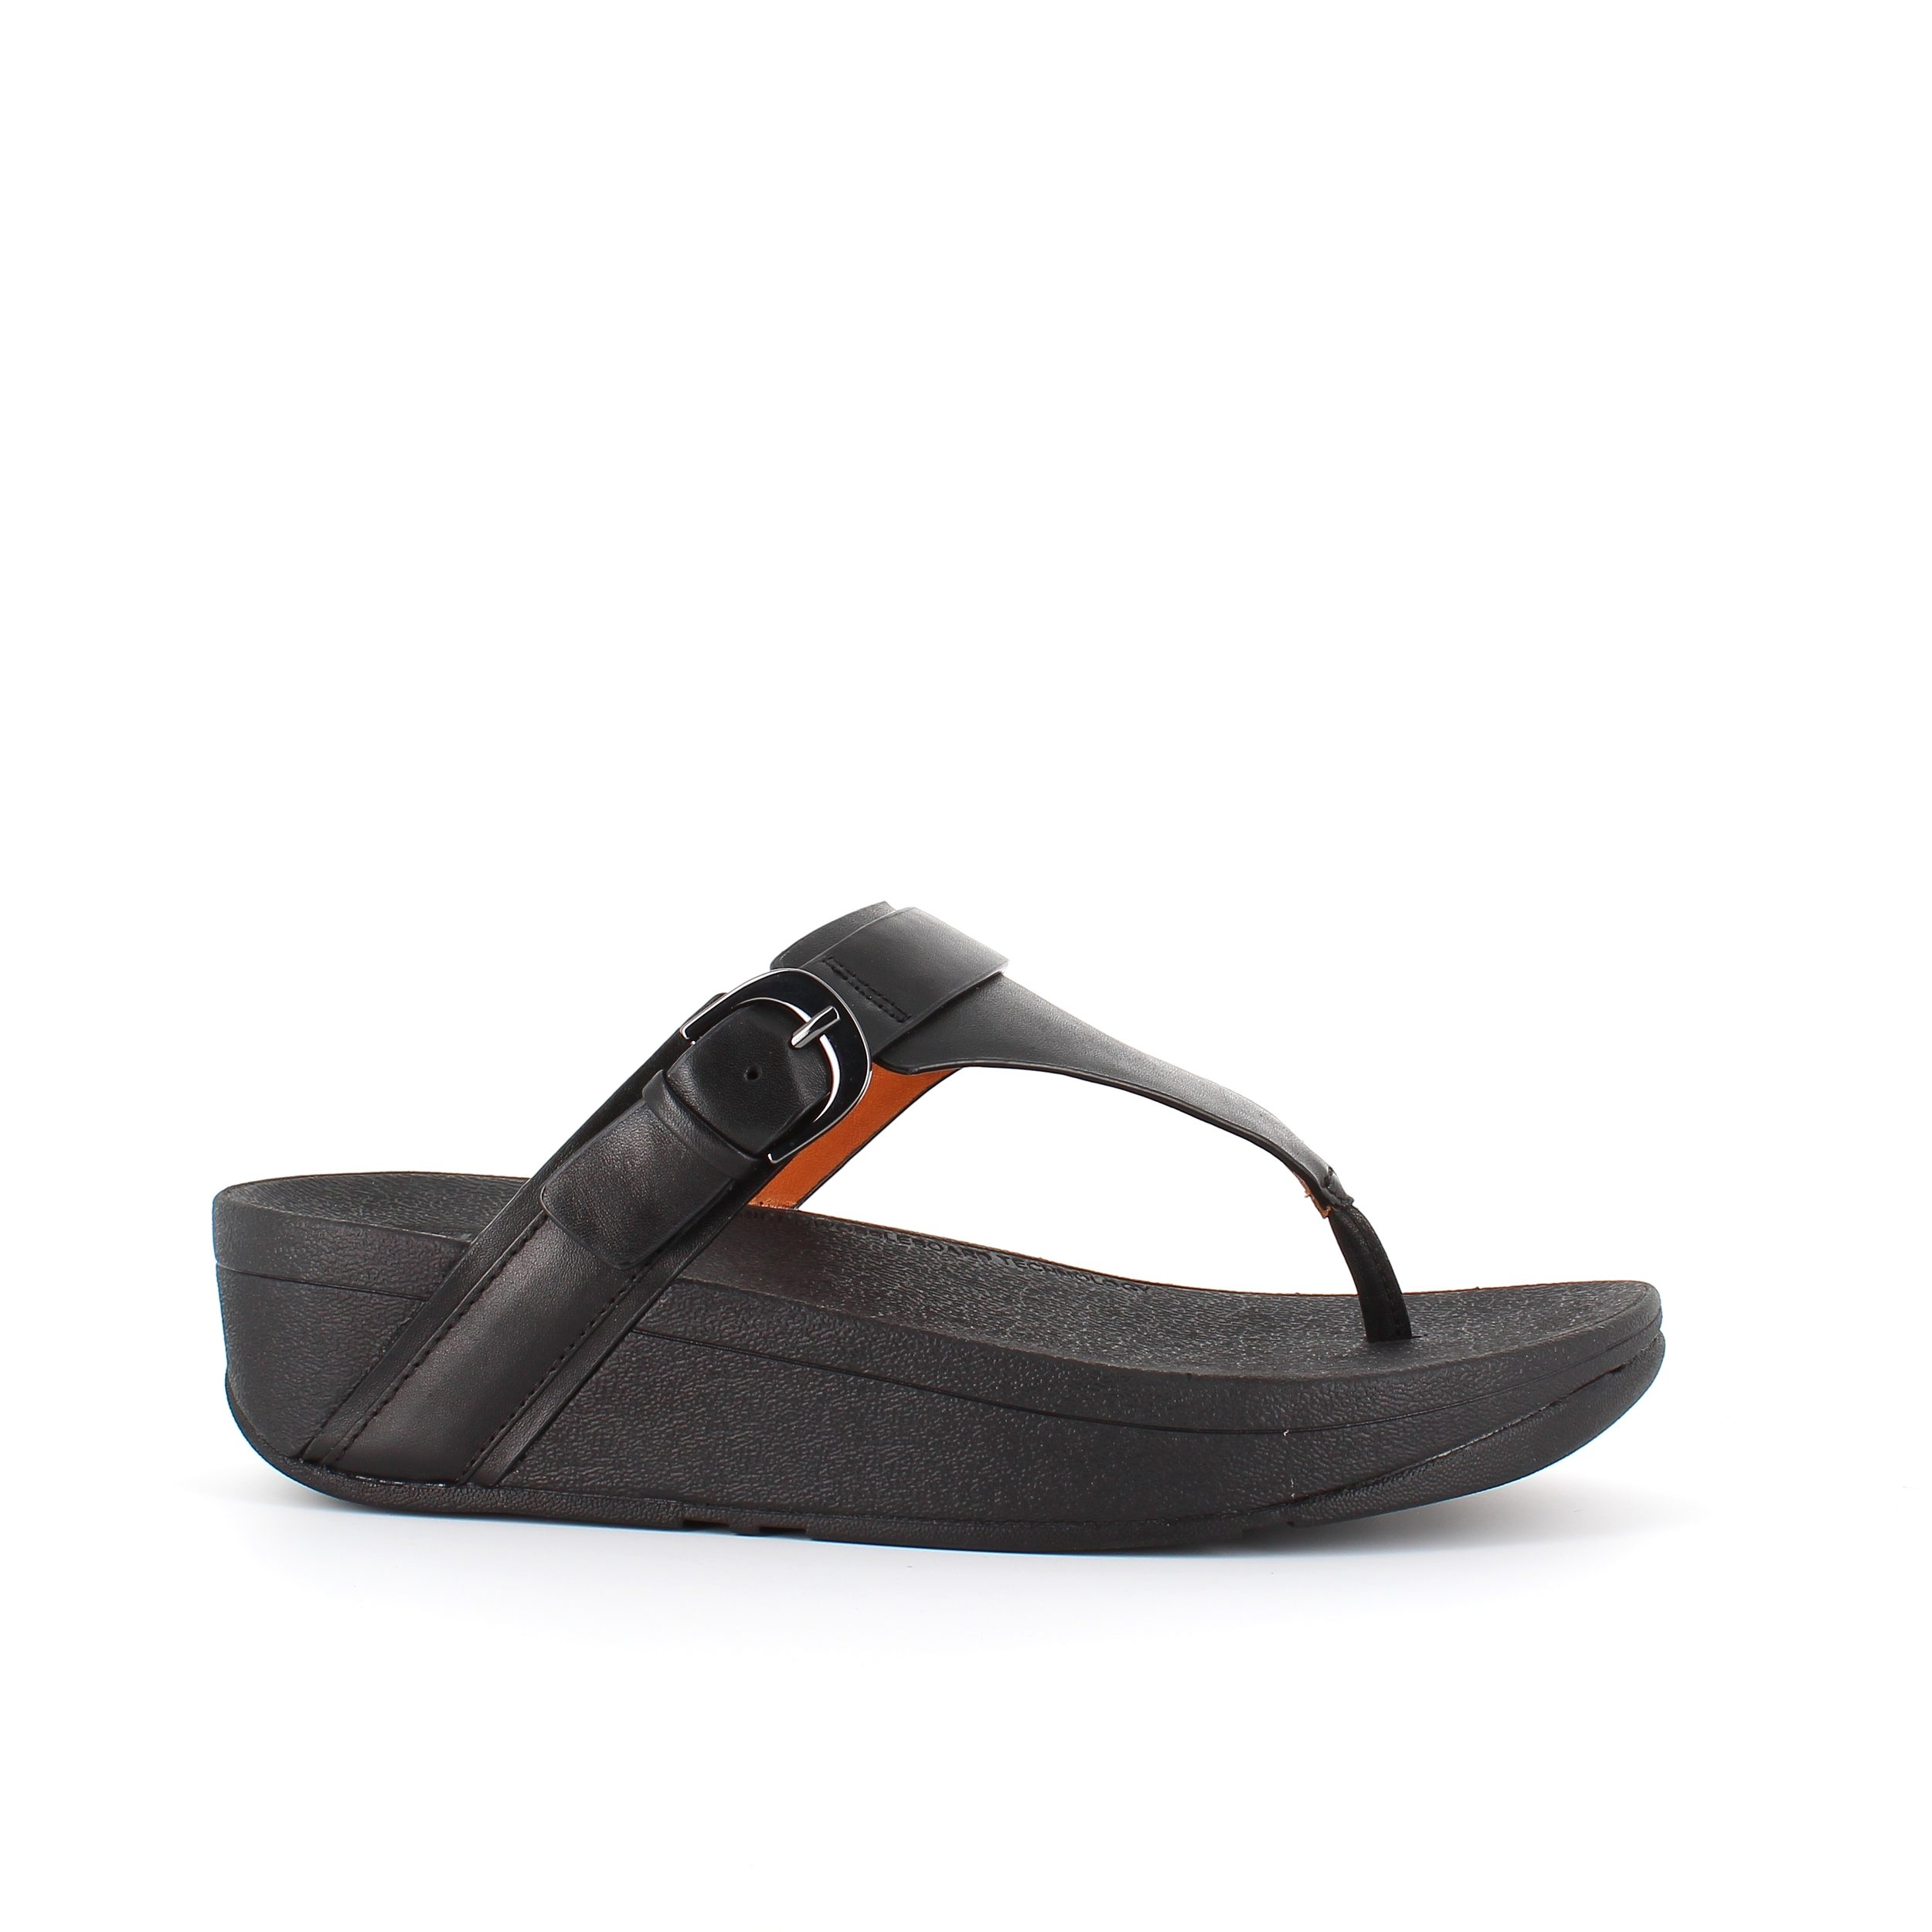 Image of   Edit fitflop sandal i læder - 40